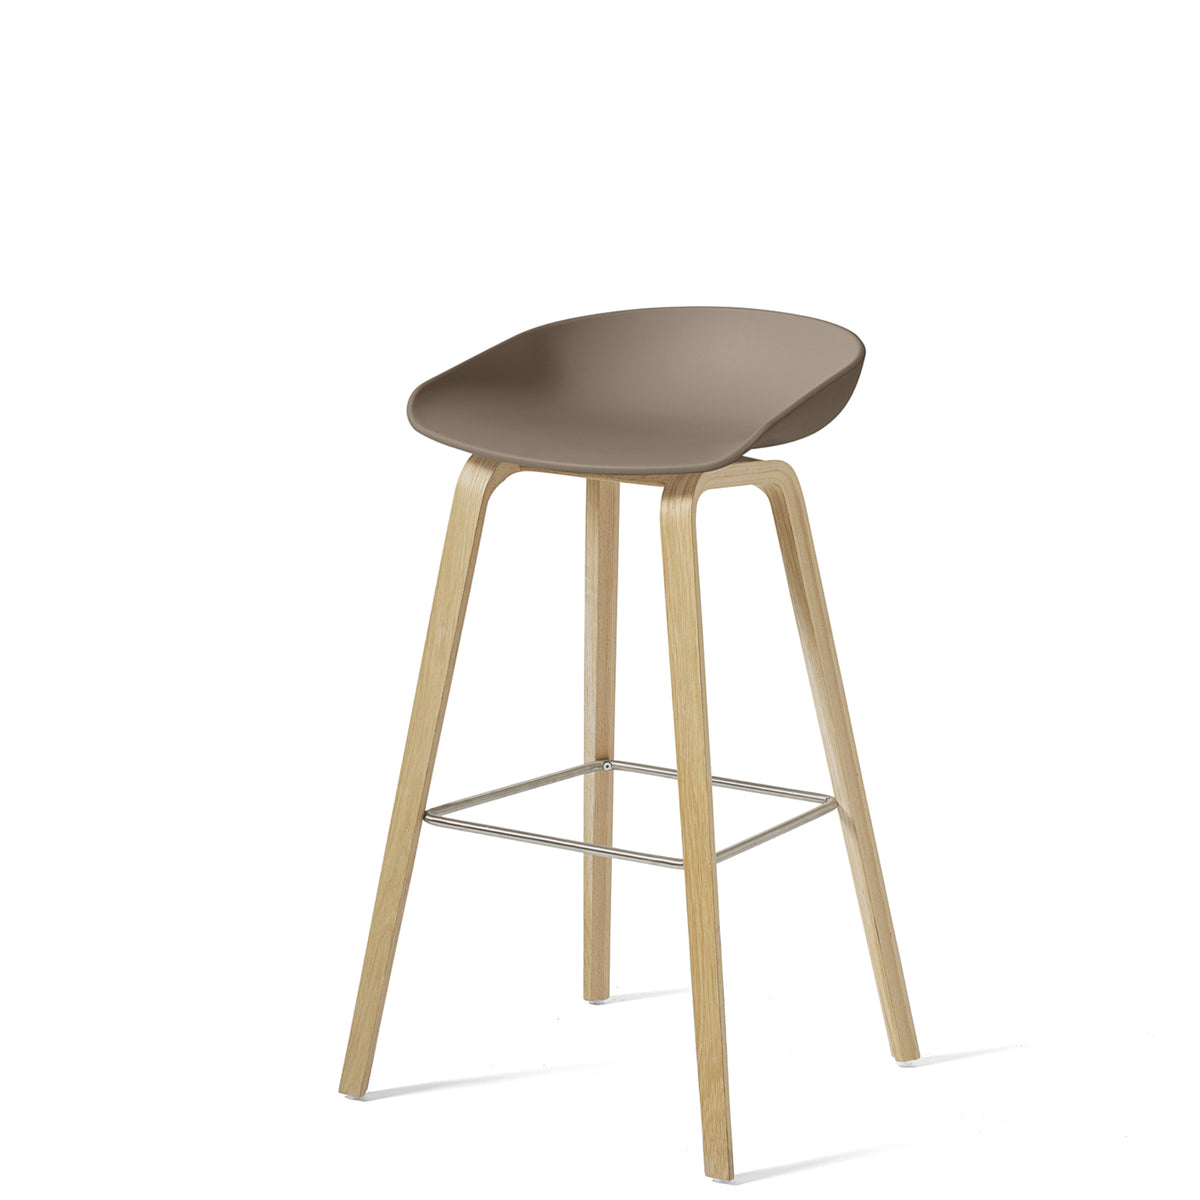 HAY About A Stool AAS32 850mm Khaki Matt Lacquered Oak Base